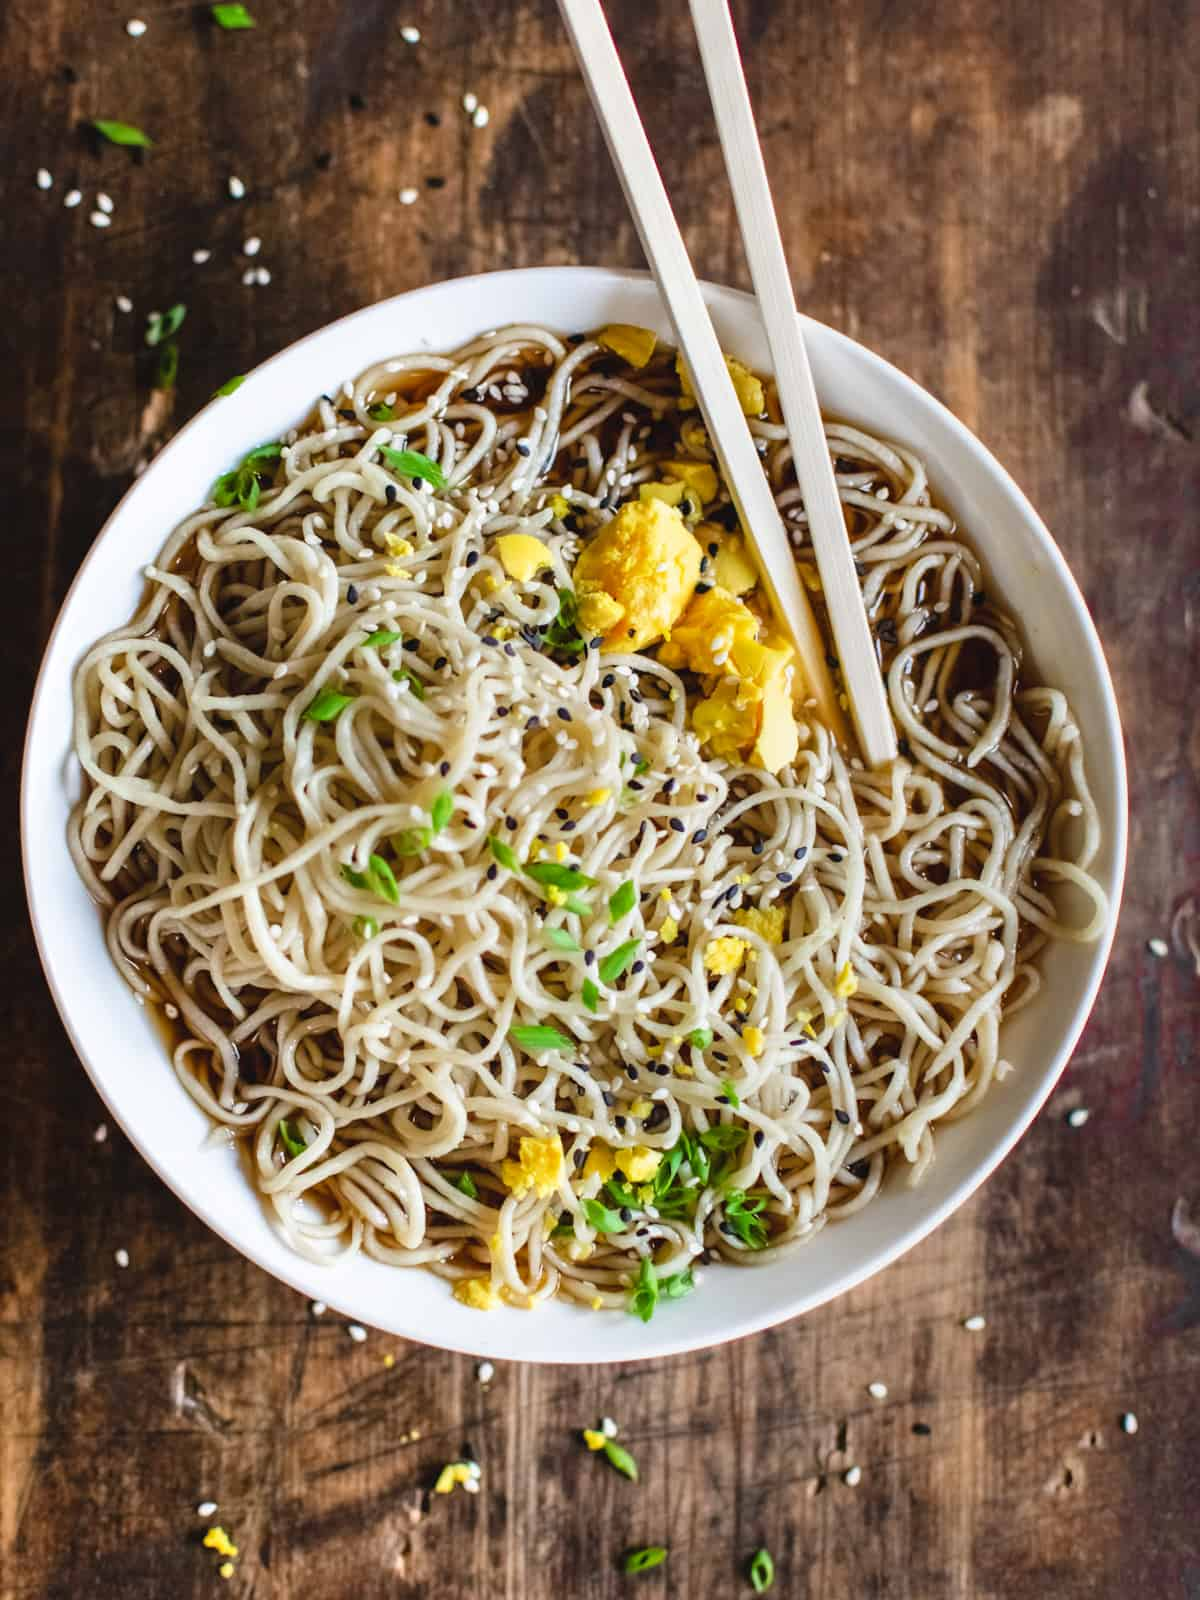 Bowl of ramen noodles in broth with egg yolk, scallions, sesame seeds and chopsticks.